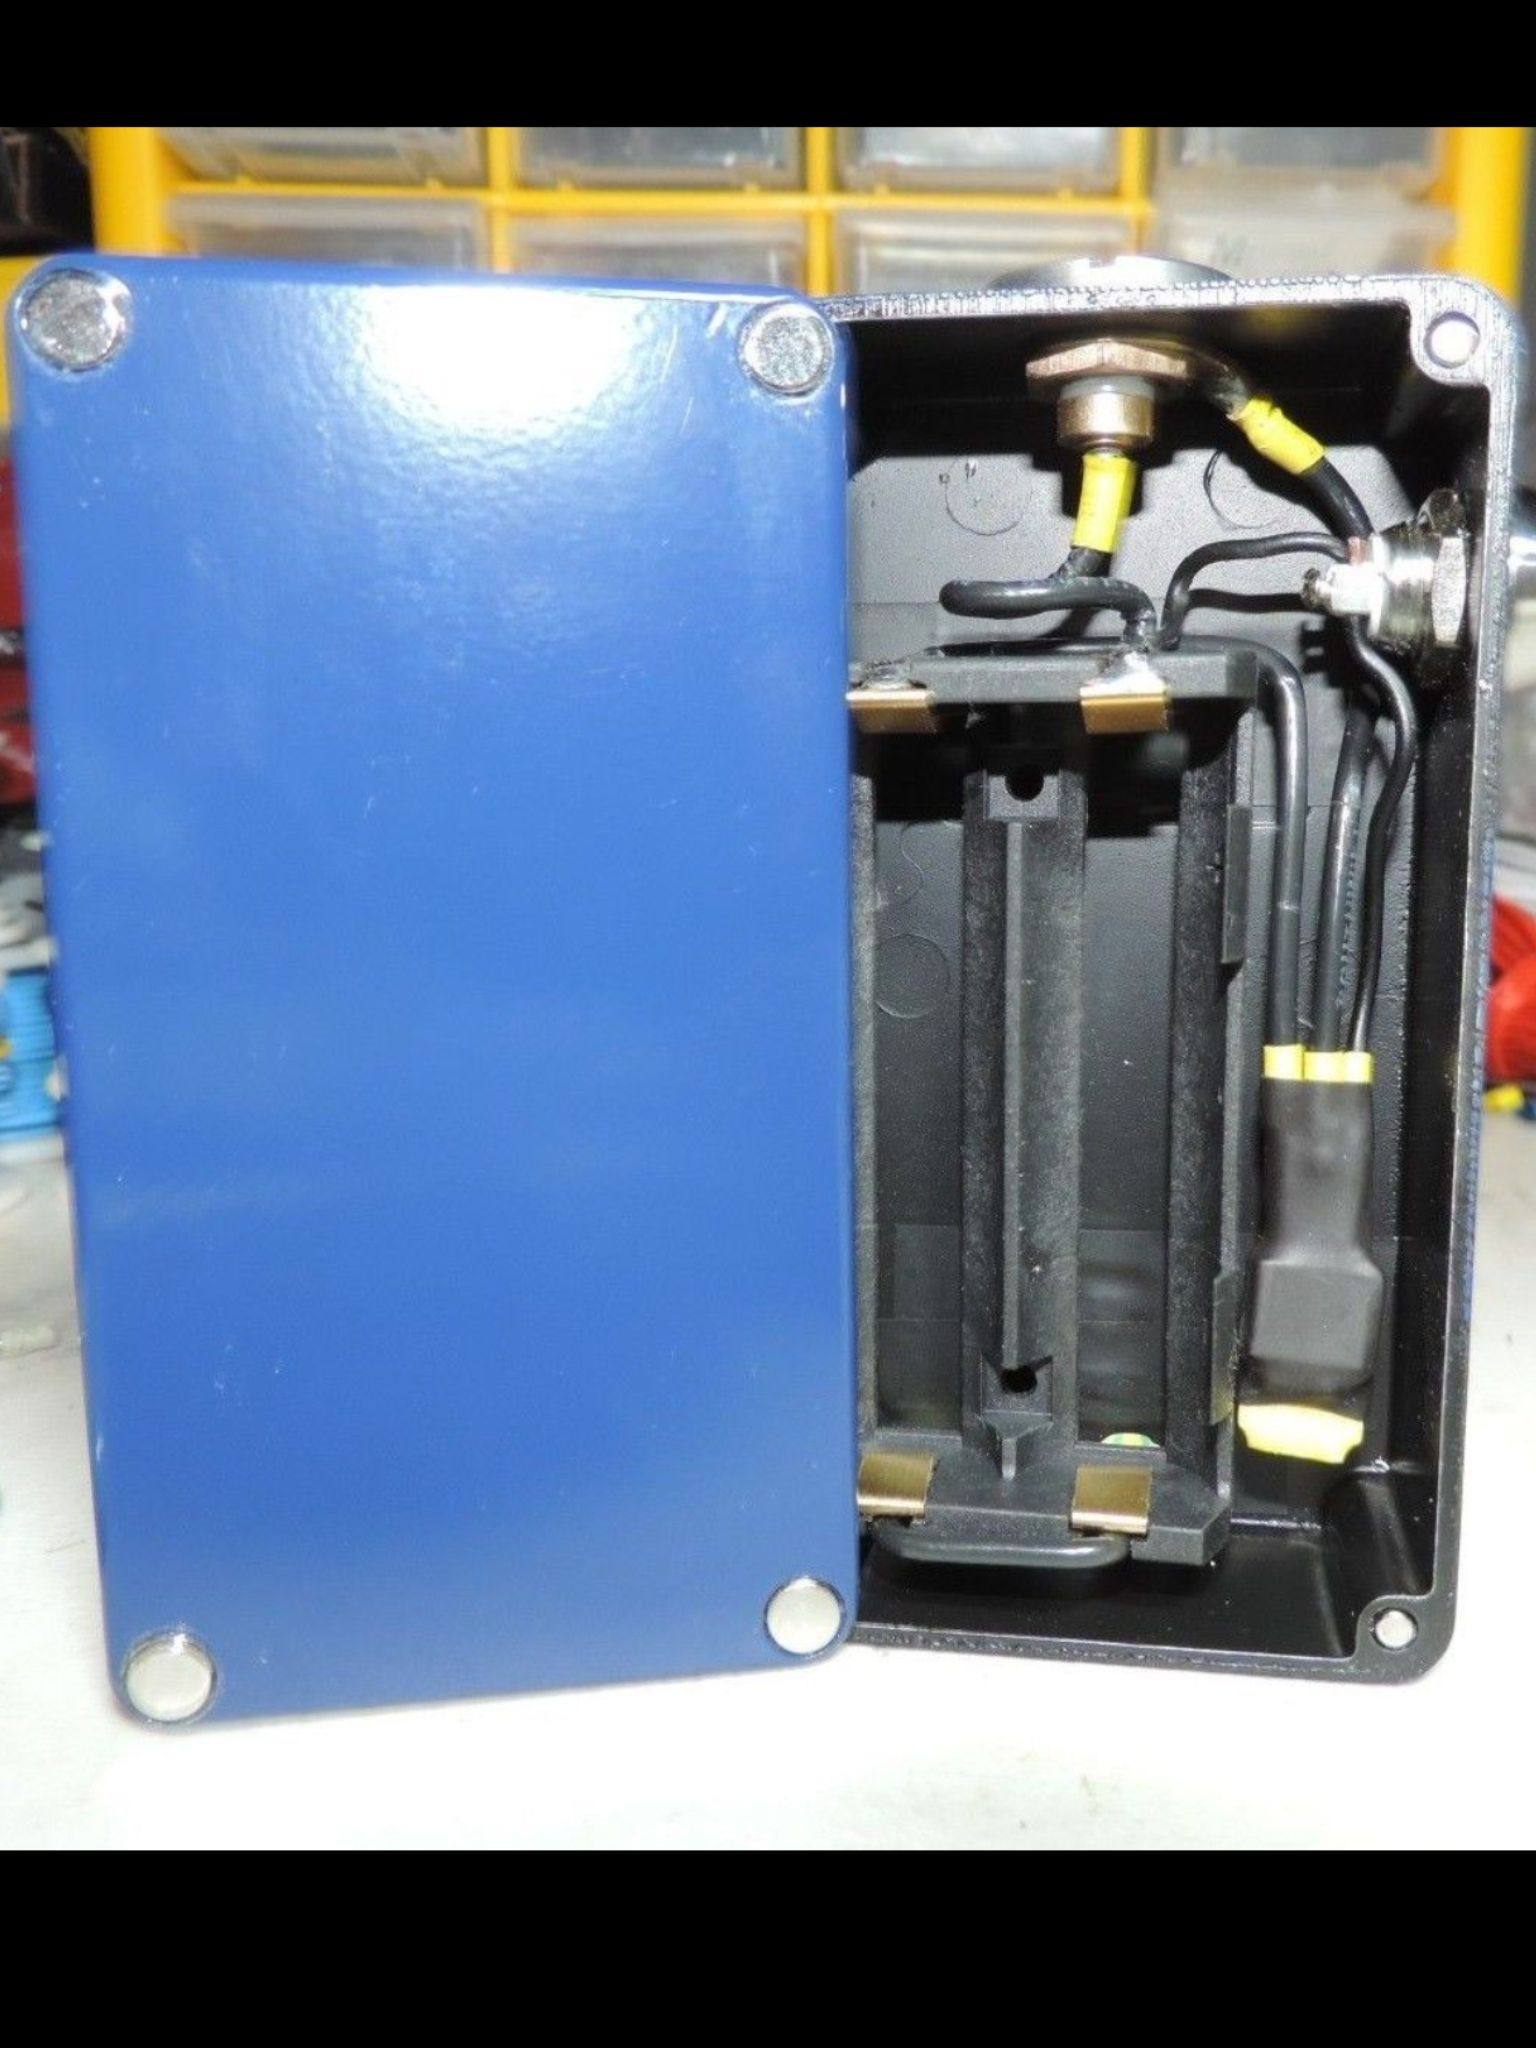 Dual Parallel Box Mod with MOSFET and (With